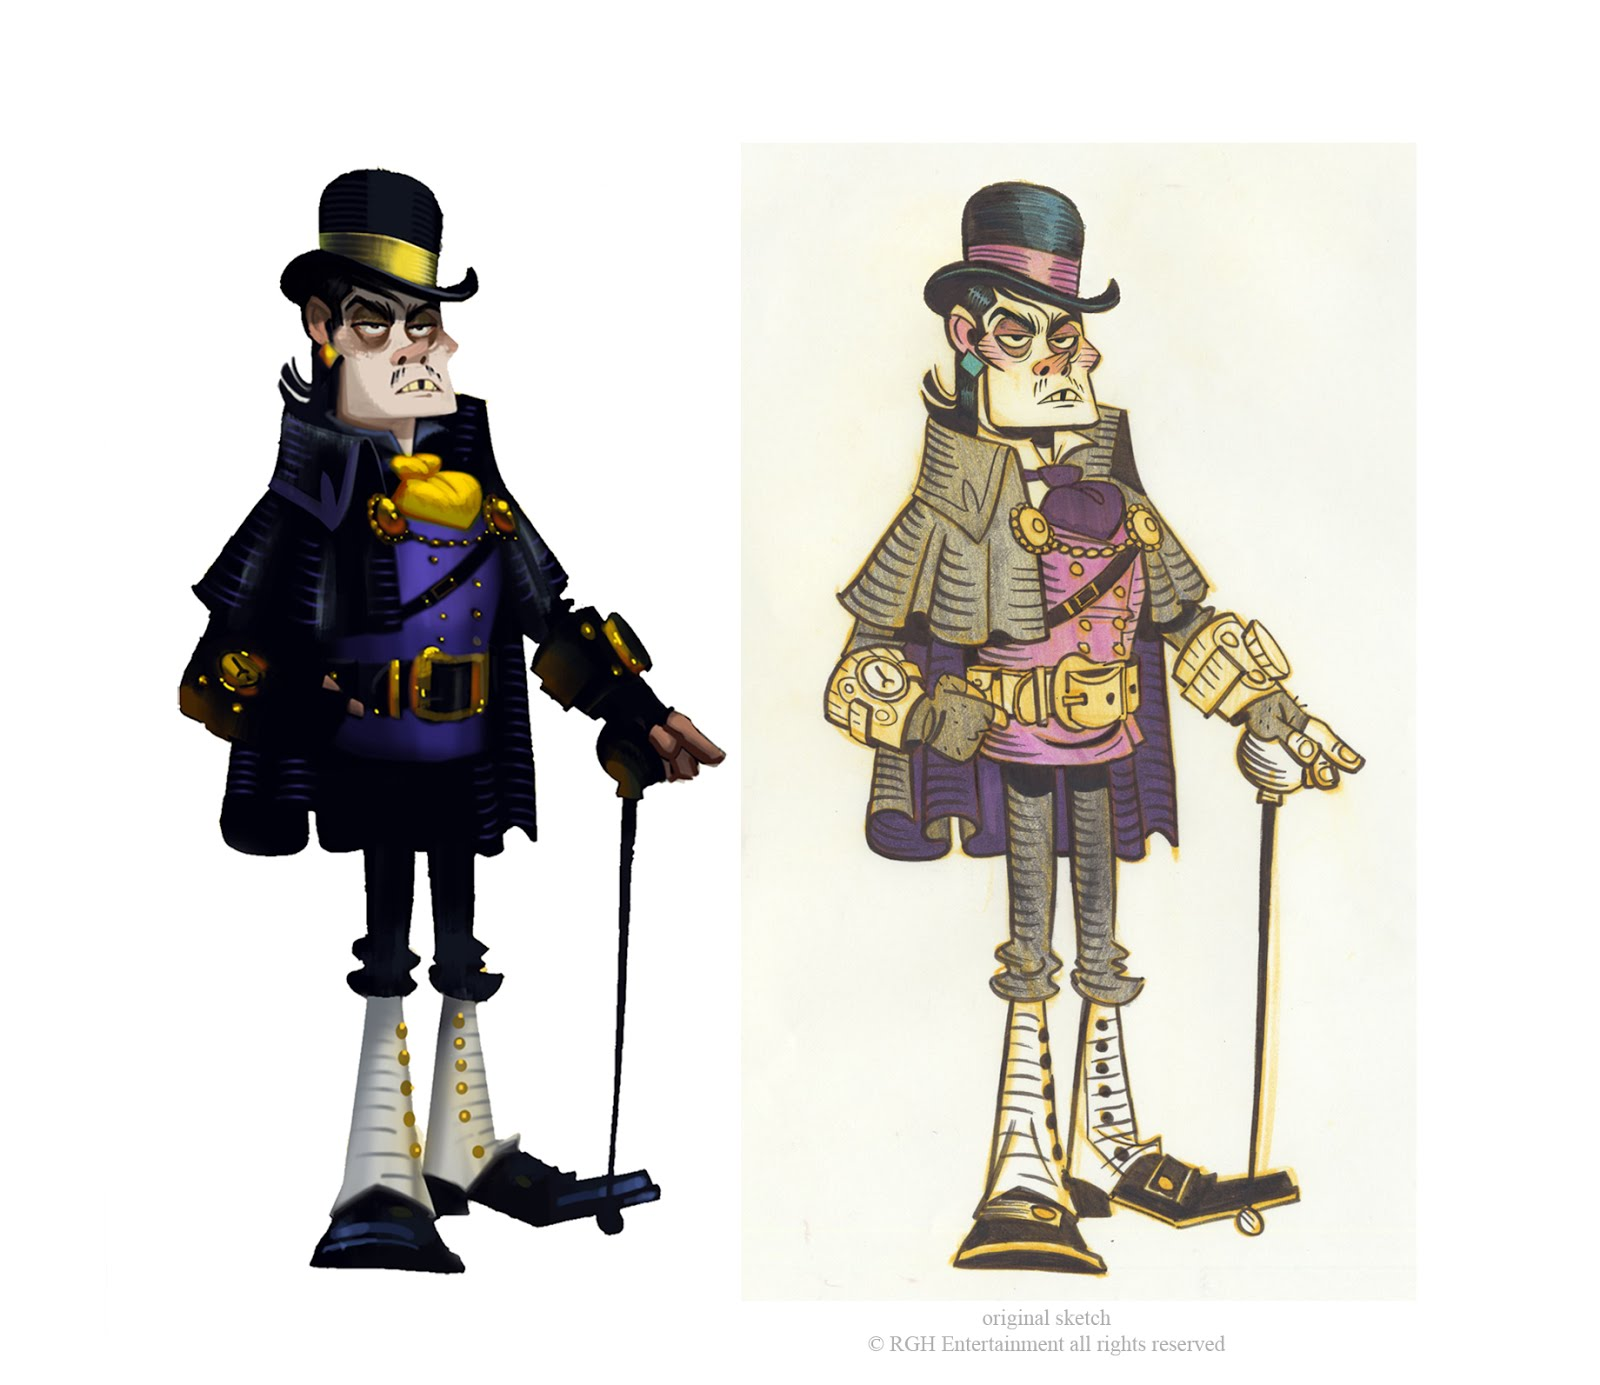 Art Director and Painter for 3D development (on the left) for designer's sketch (on the right)